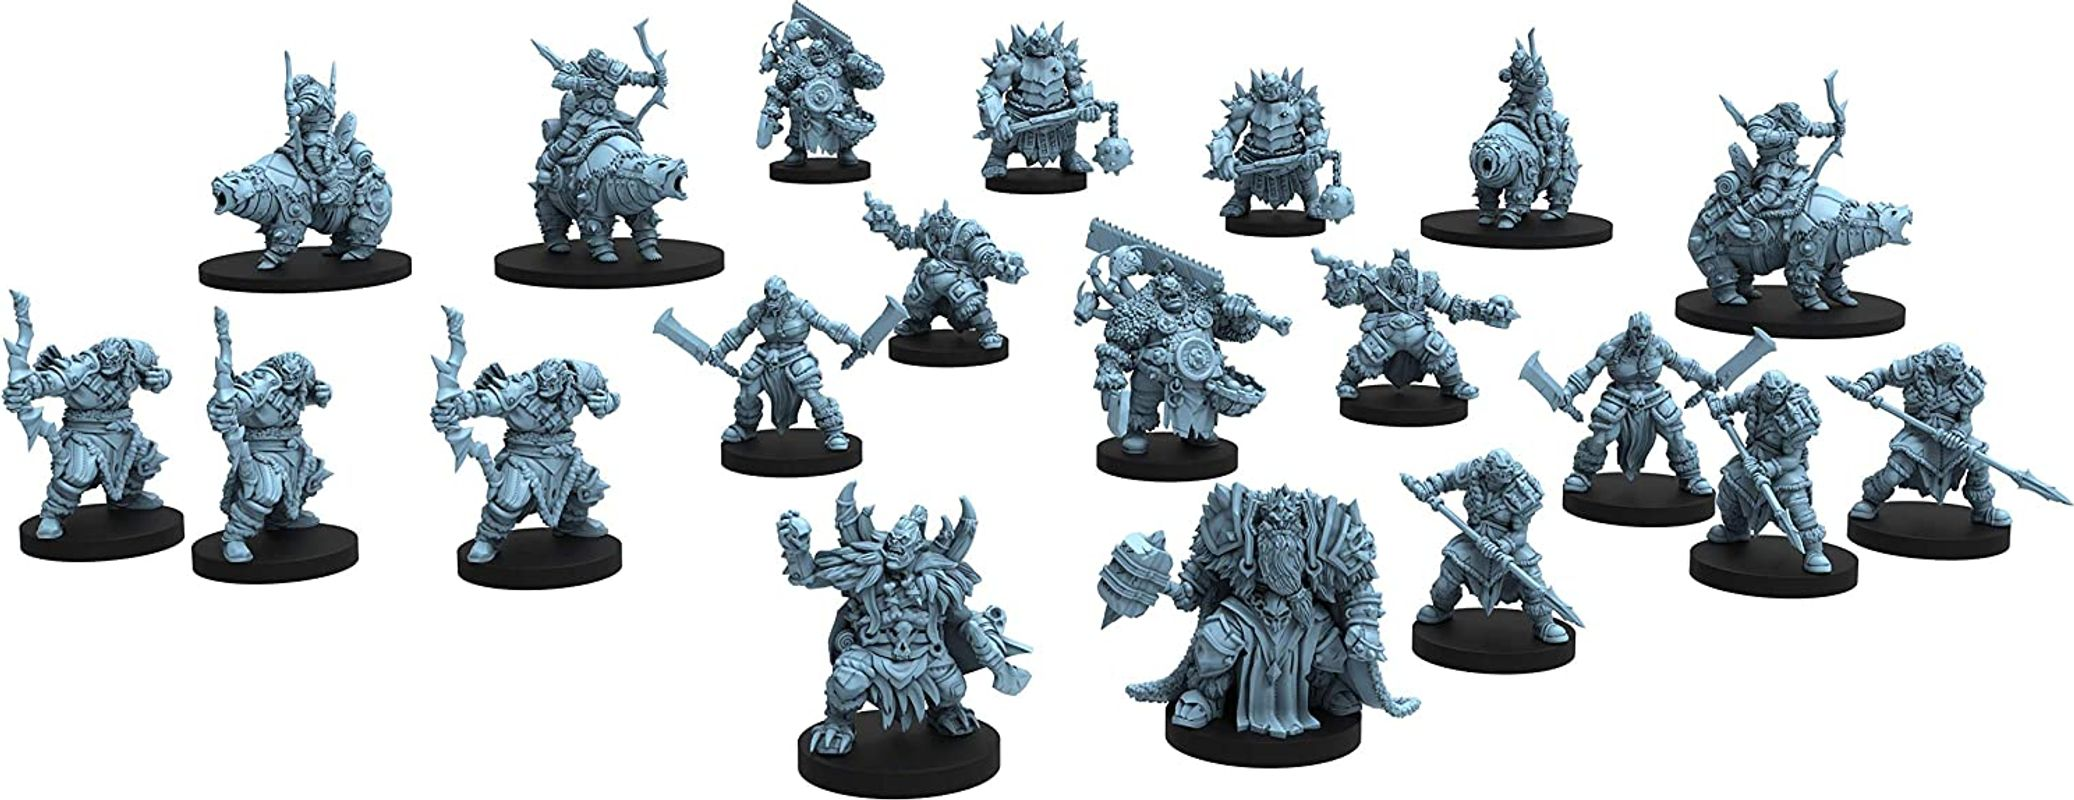 Hall of the Orc King miniatures